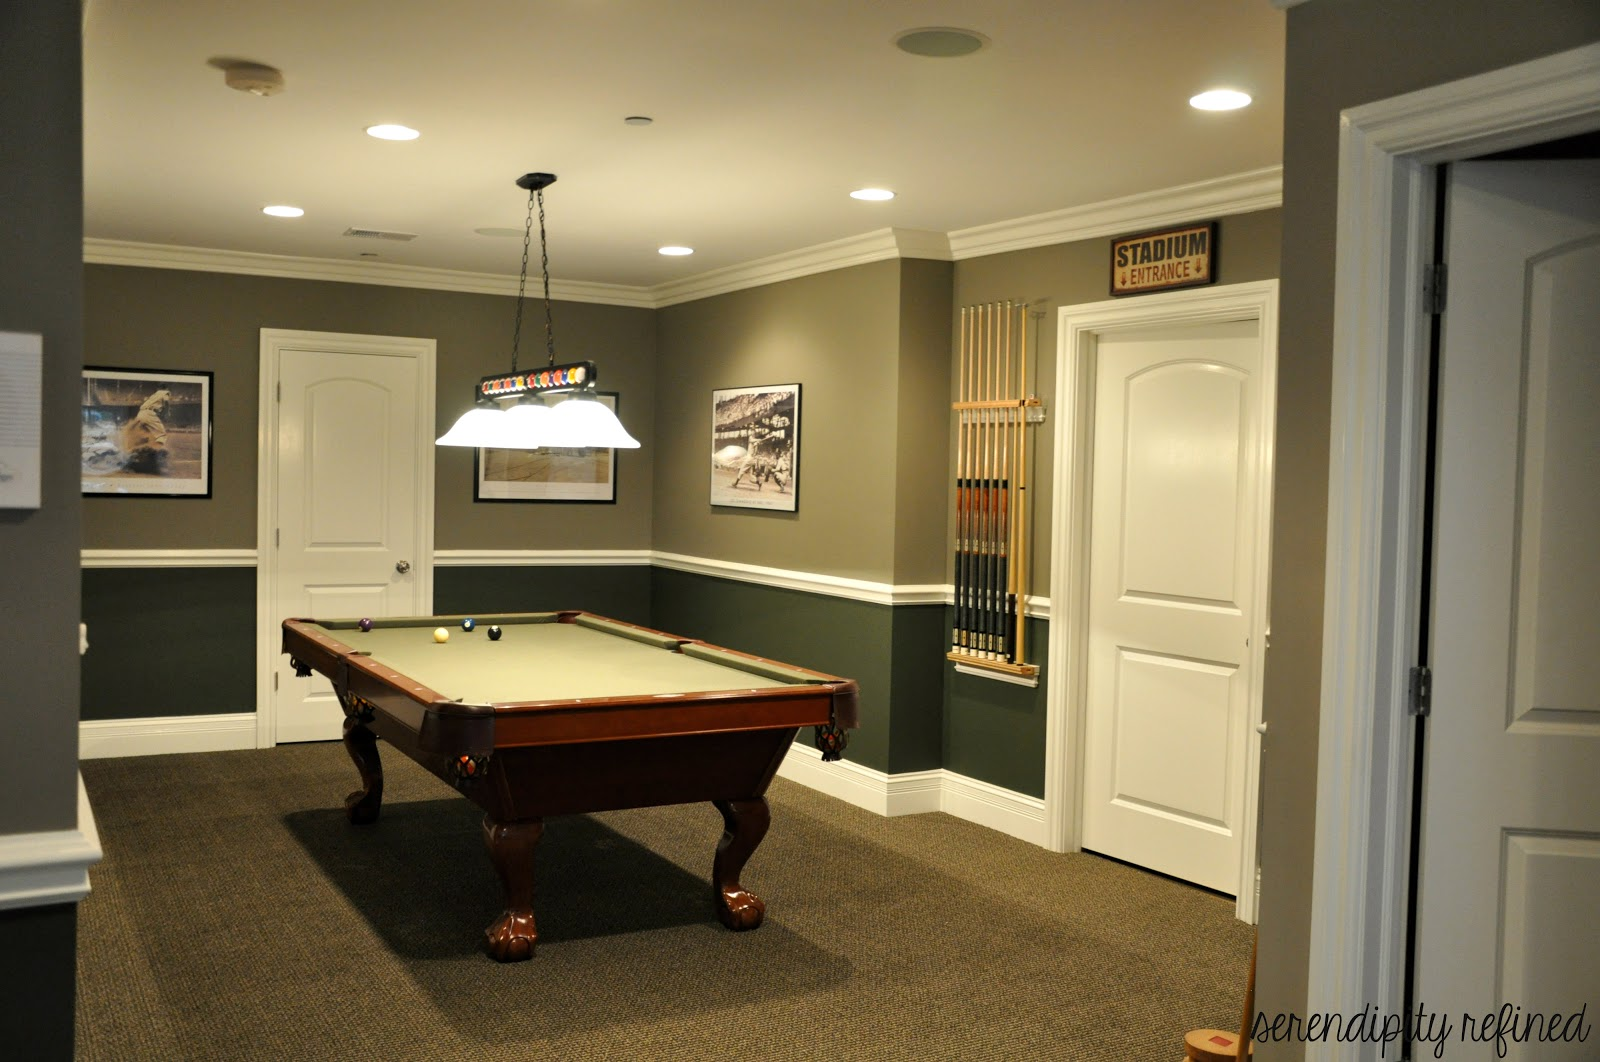 Best Serendipity Refined Blog Basement Make Over Reveal And My This Month